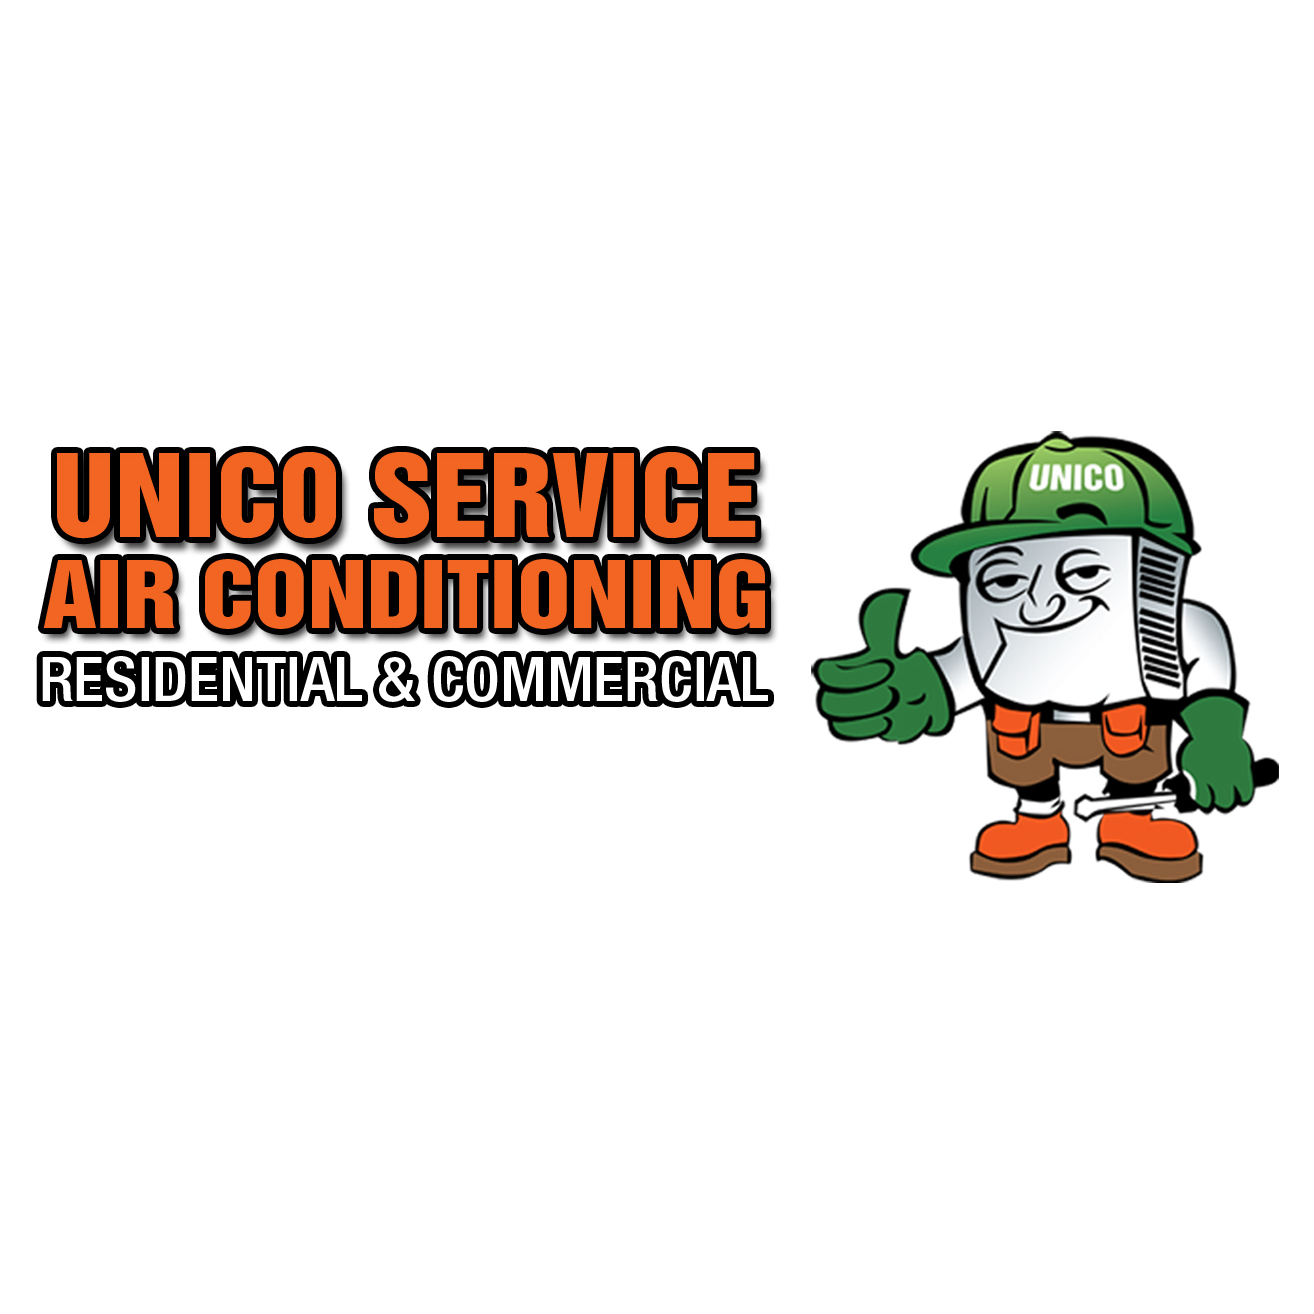 Unico Service Air Conditioning